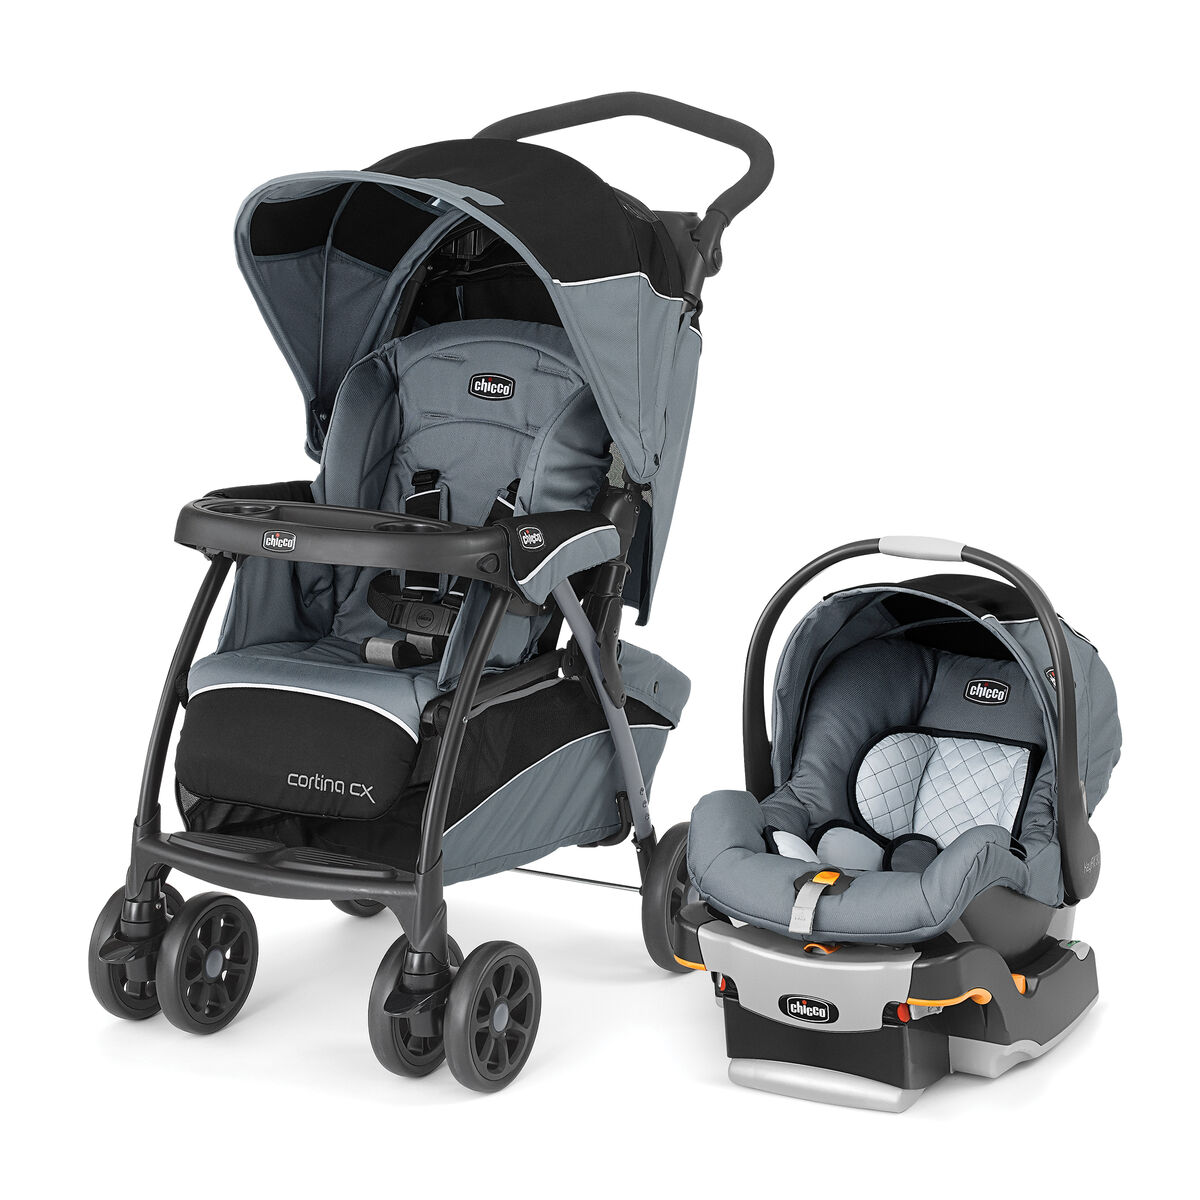 Chicco Chicco Cortina Cx Travel System Iron